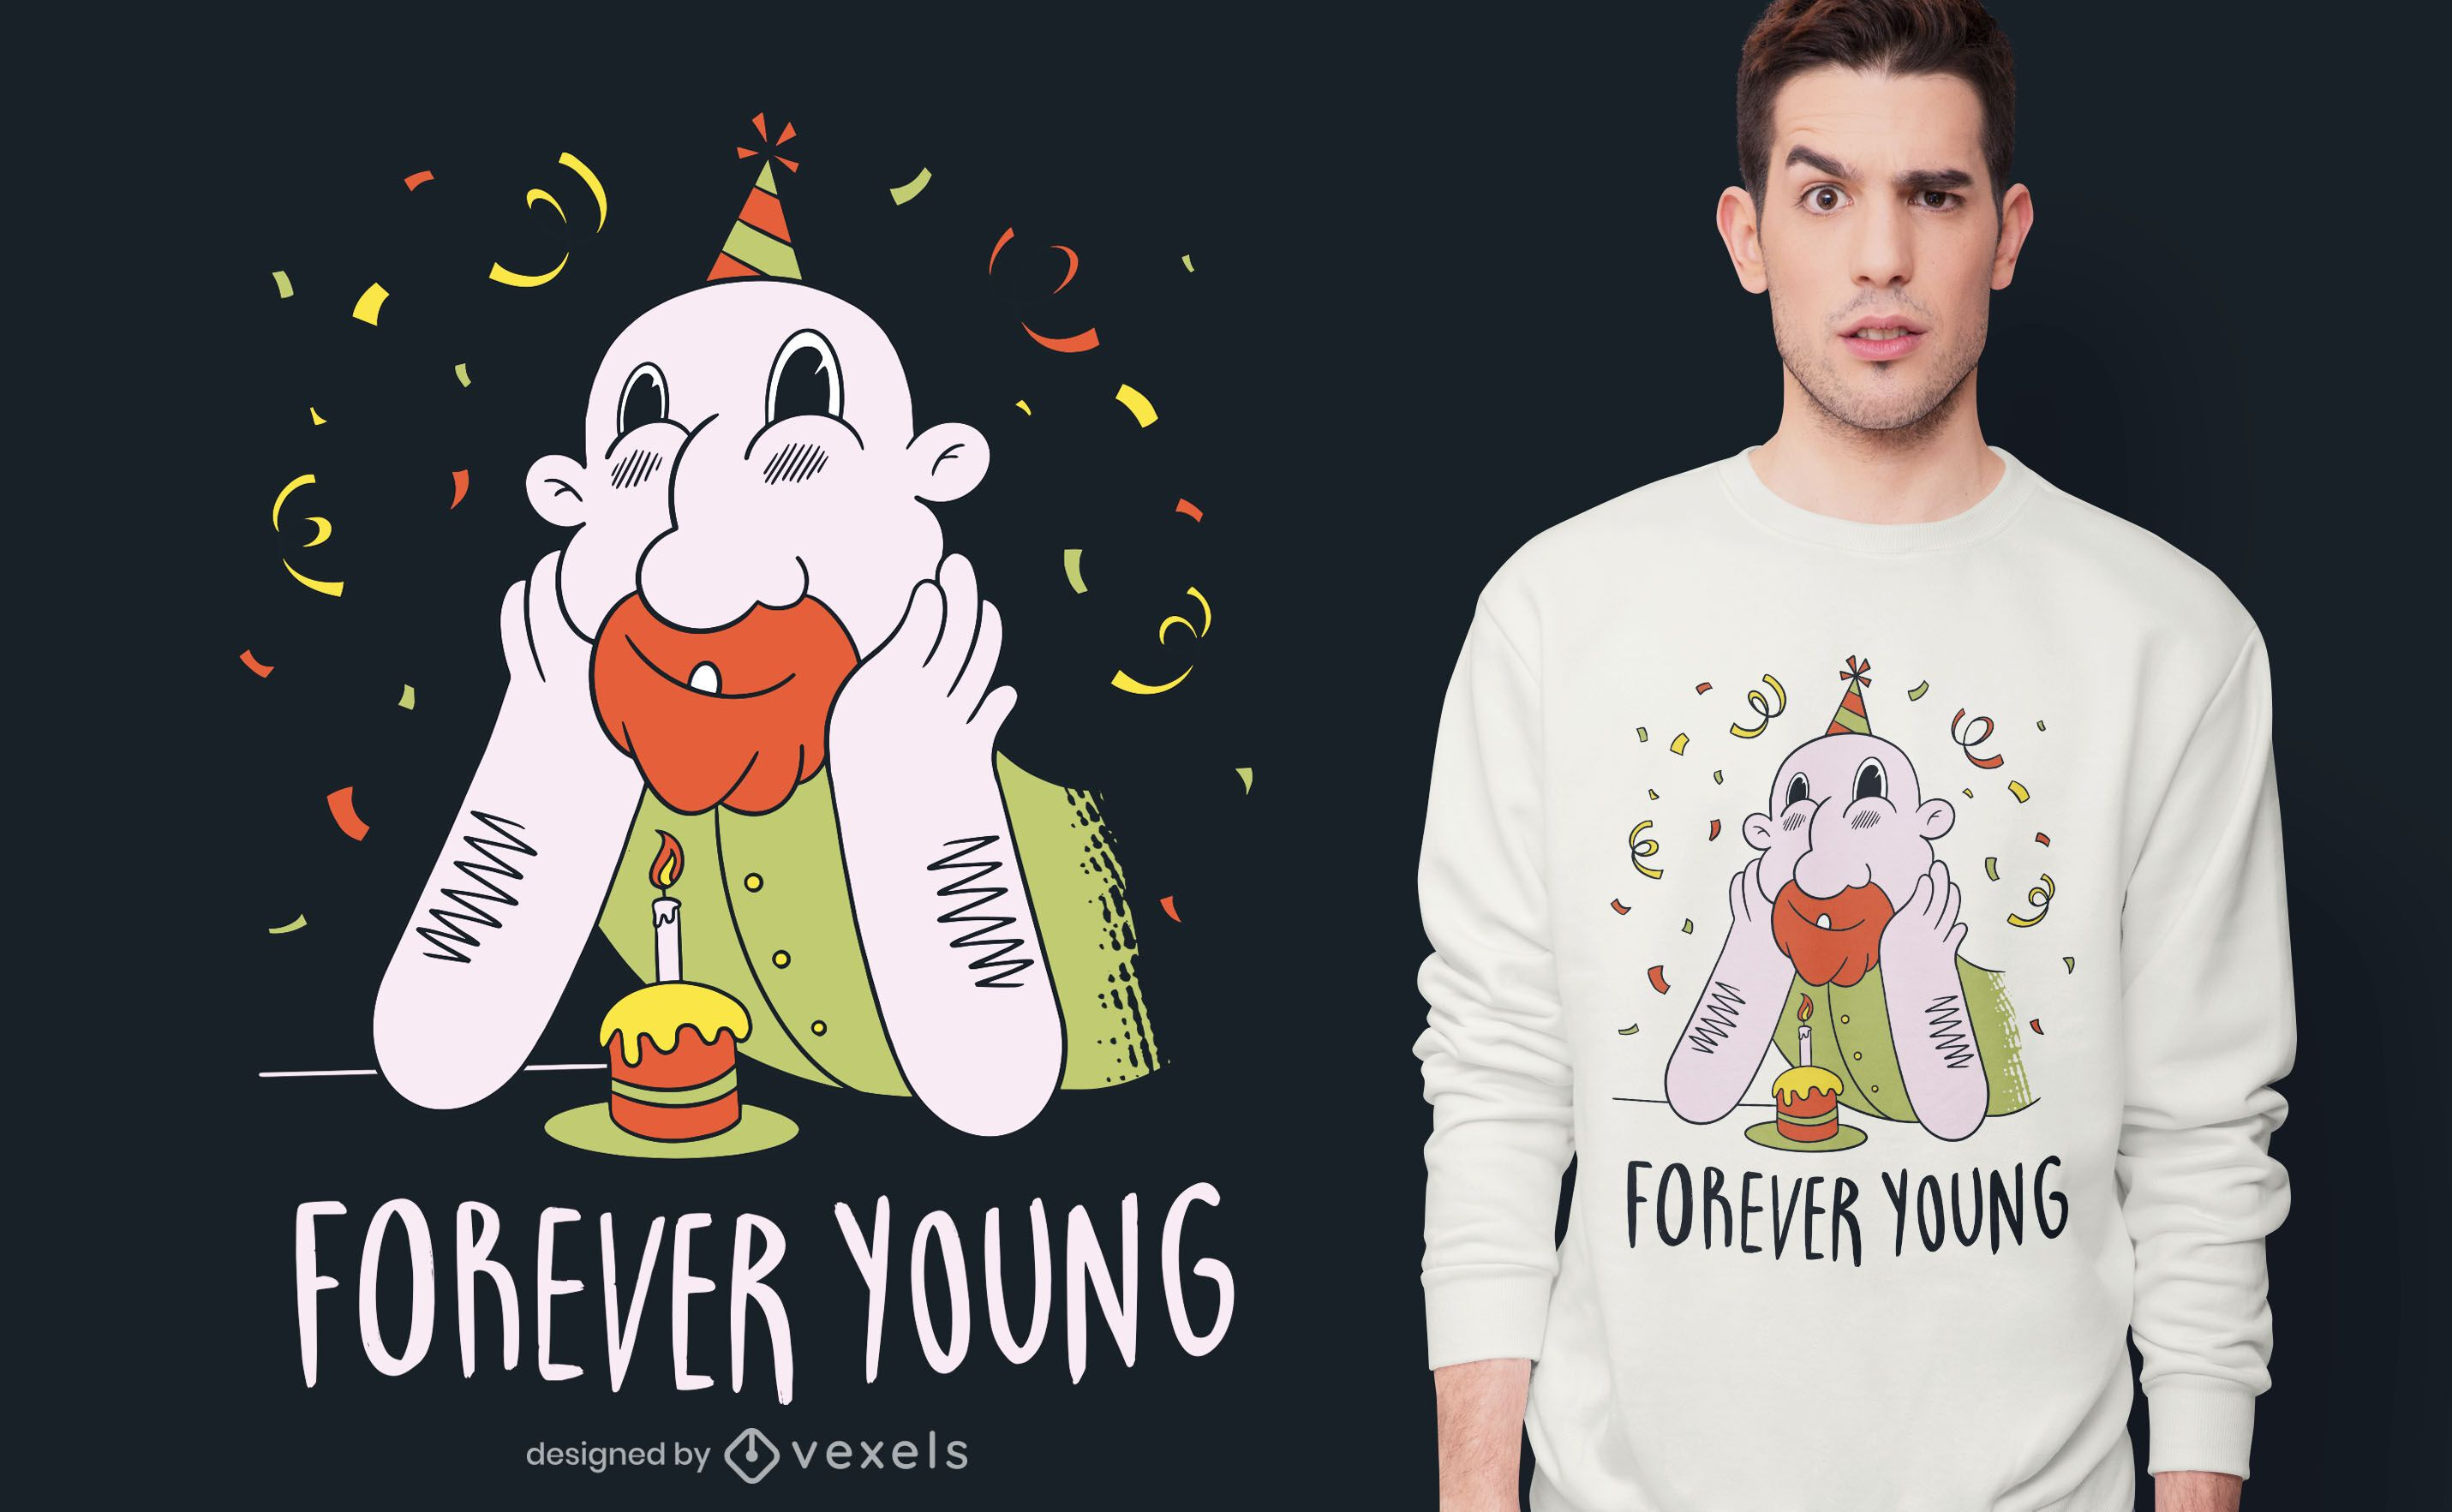 Forever young birthday t-shirt design